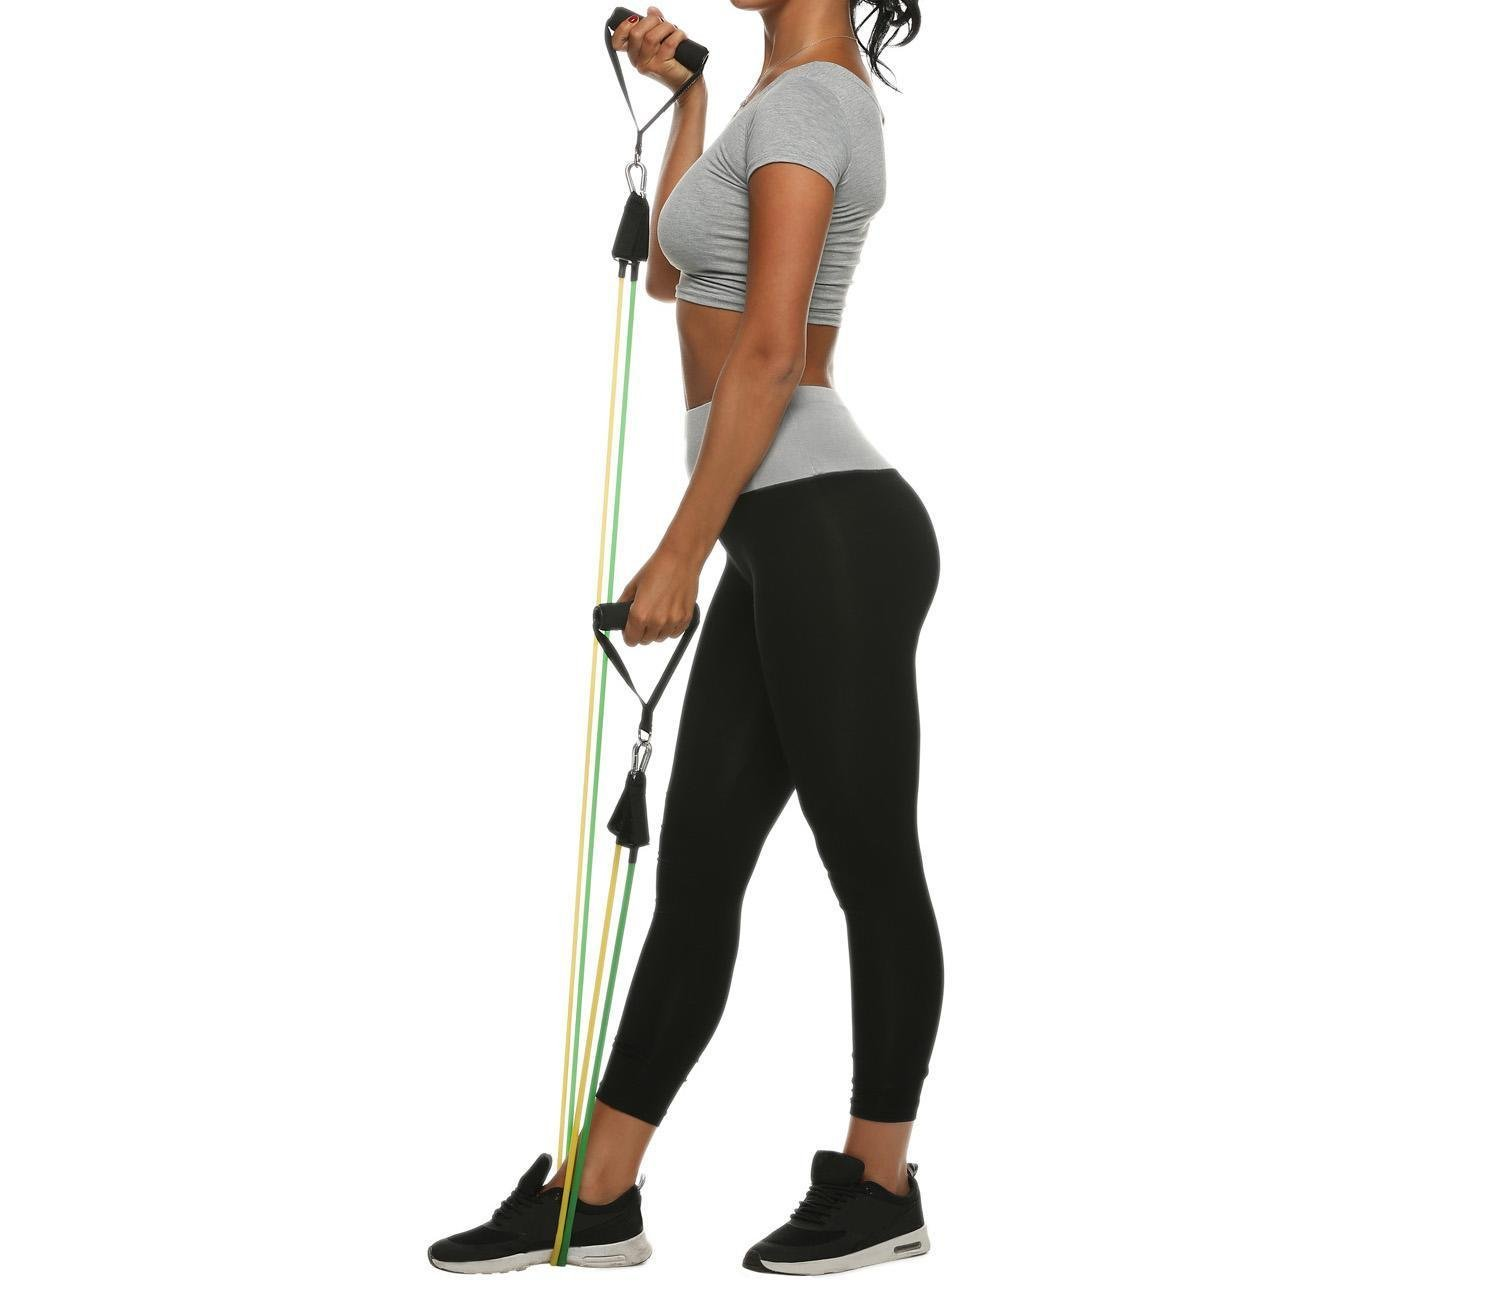 Kaimu 11pcs Resistance Band Set Fitness Exercise Band with Door Anchor Ankle Strap Carrying Bag Straps